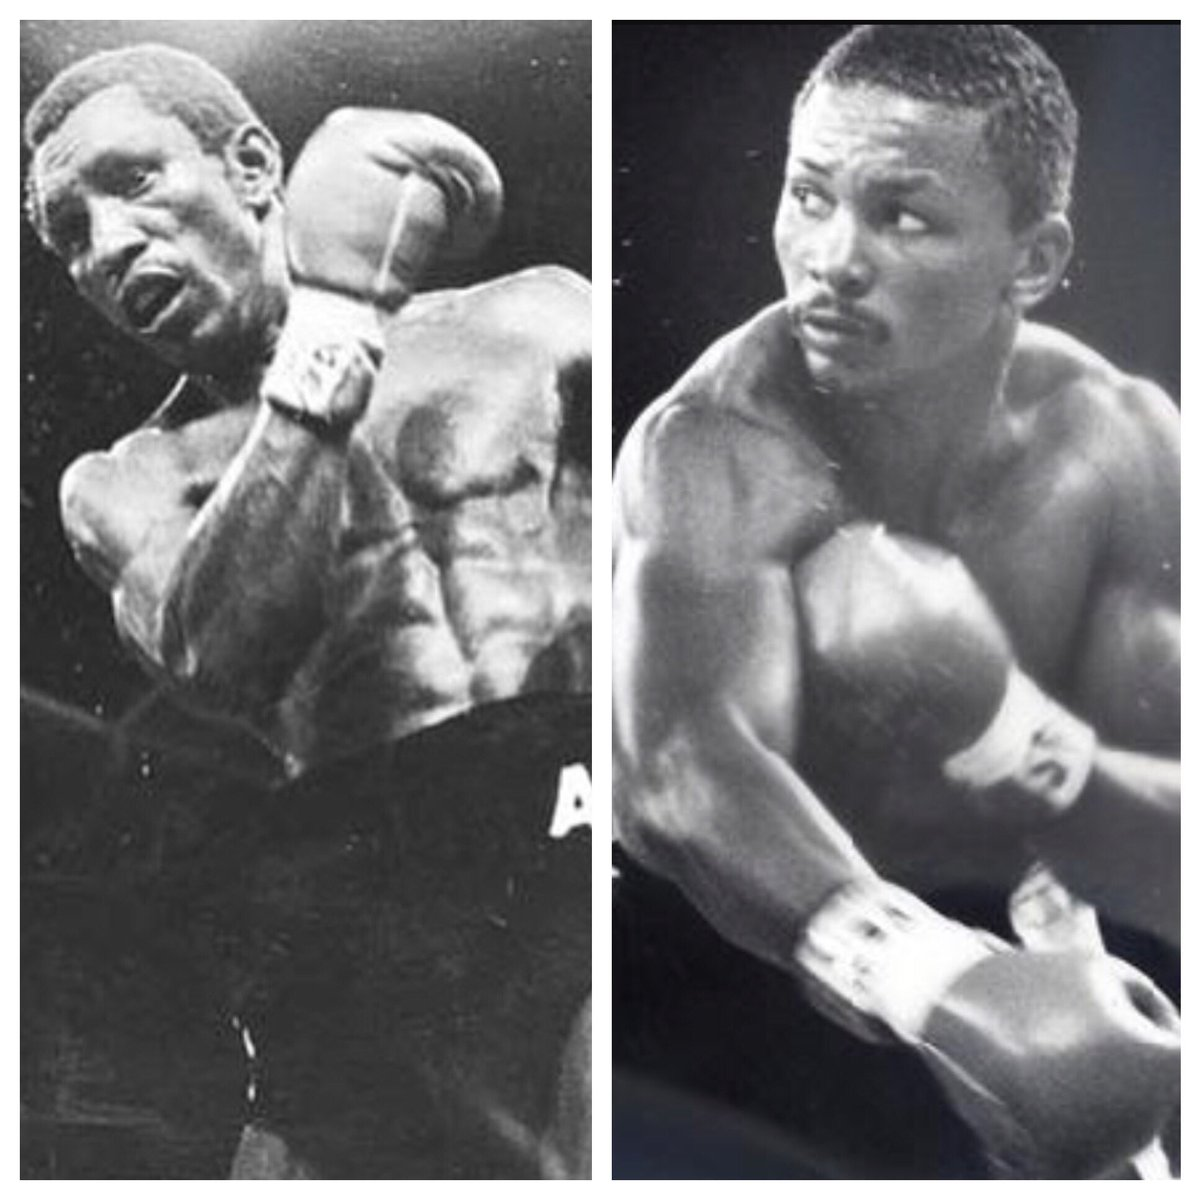 1975: Antonio 'Kid Pambele' Cervantes W15 Esteban DeJesus, Panama City. Retains World Super Lightweight Title.